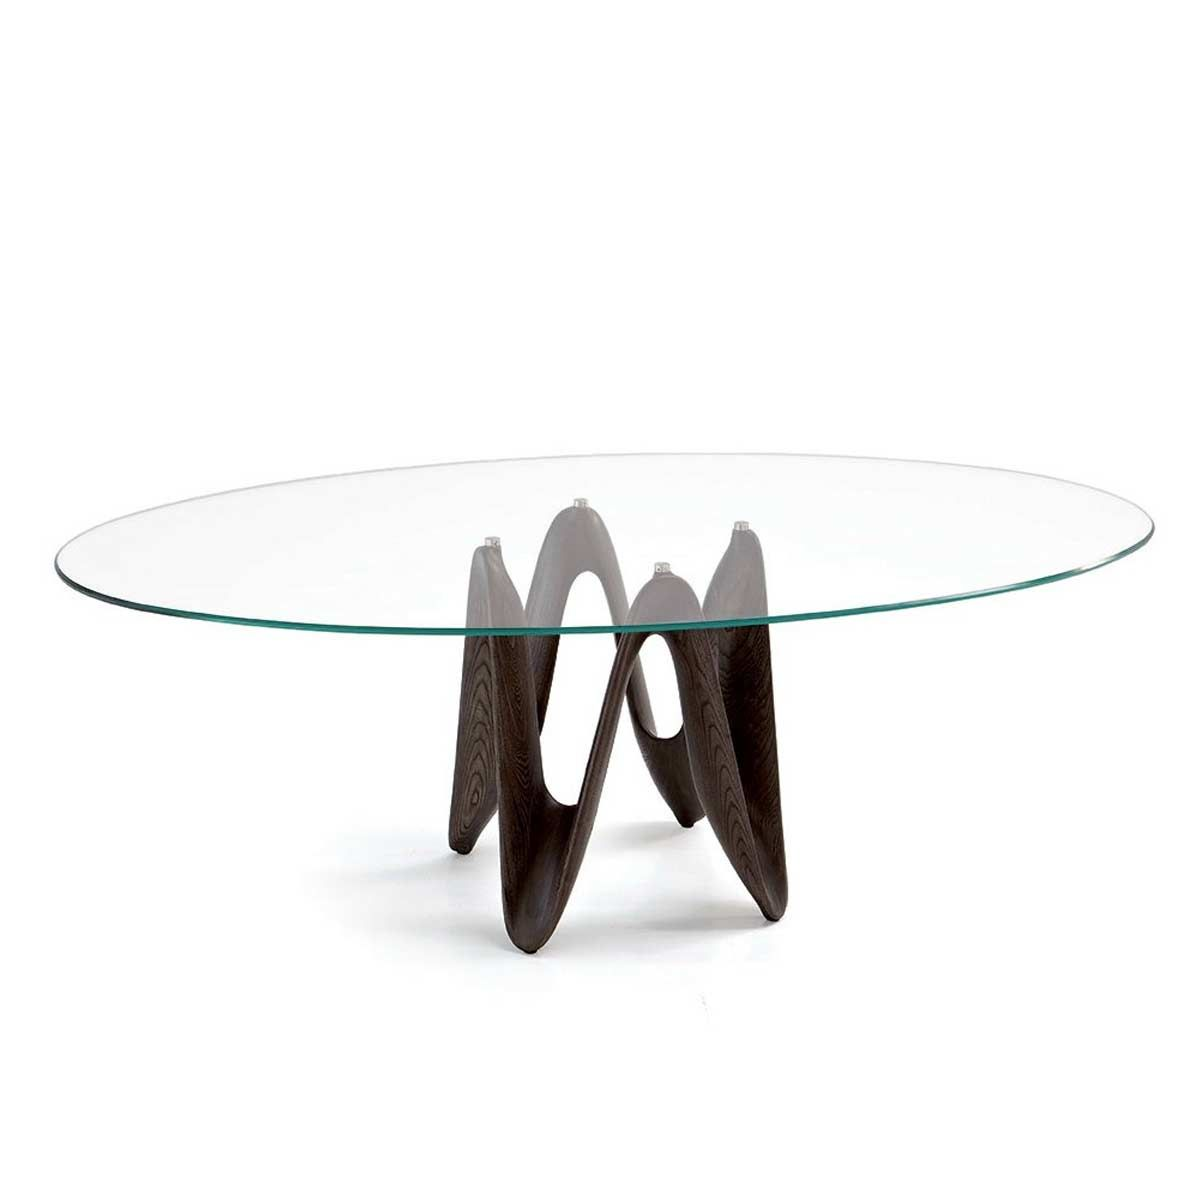 Lambda Oval Glass Dining Table Is Made From A Unique Sculpted Base